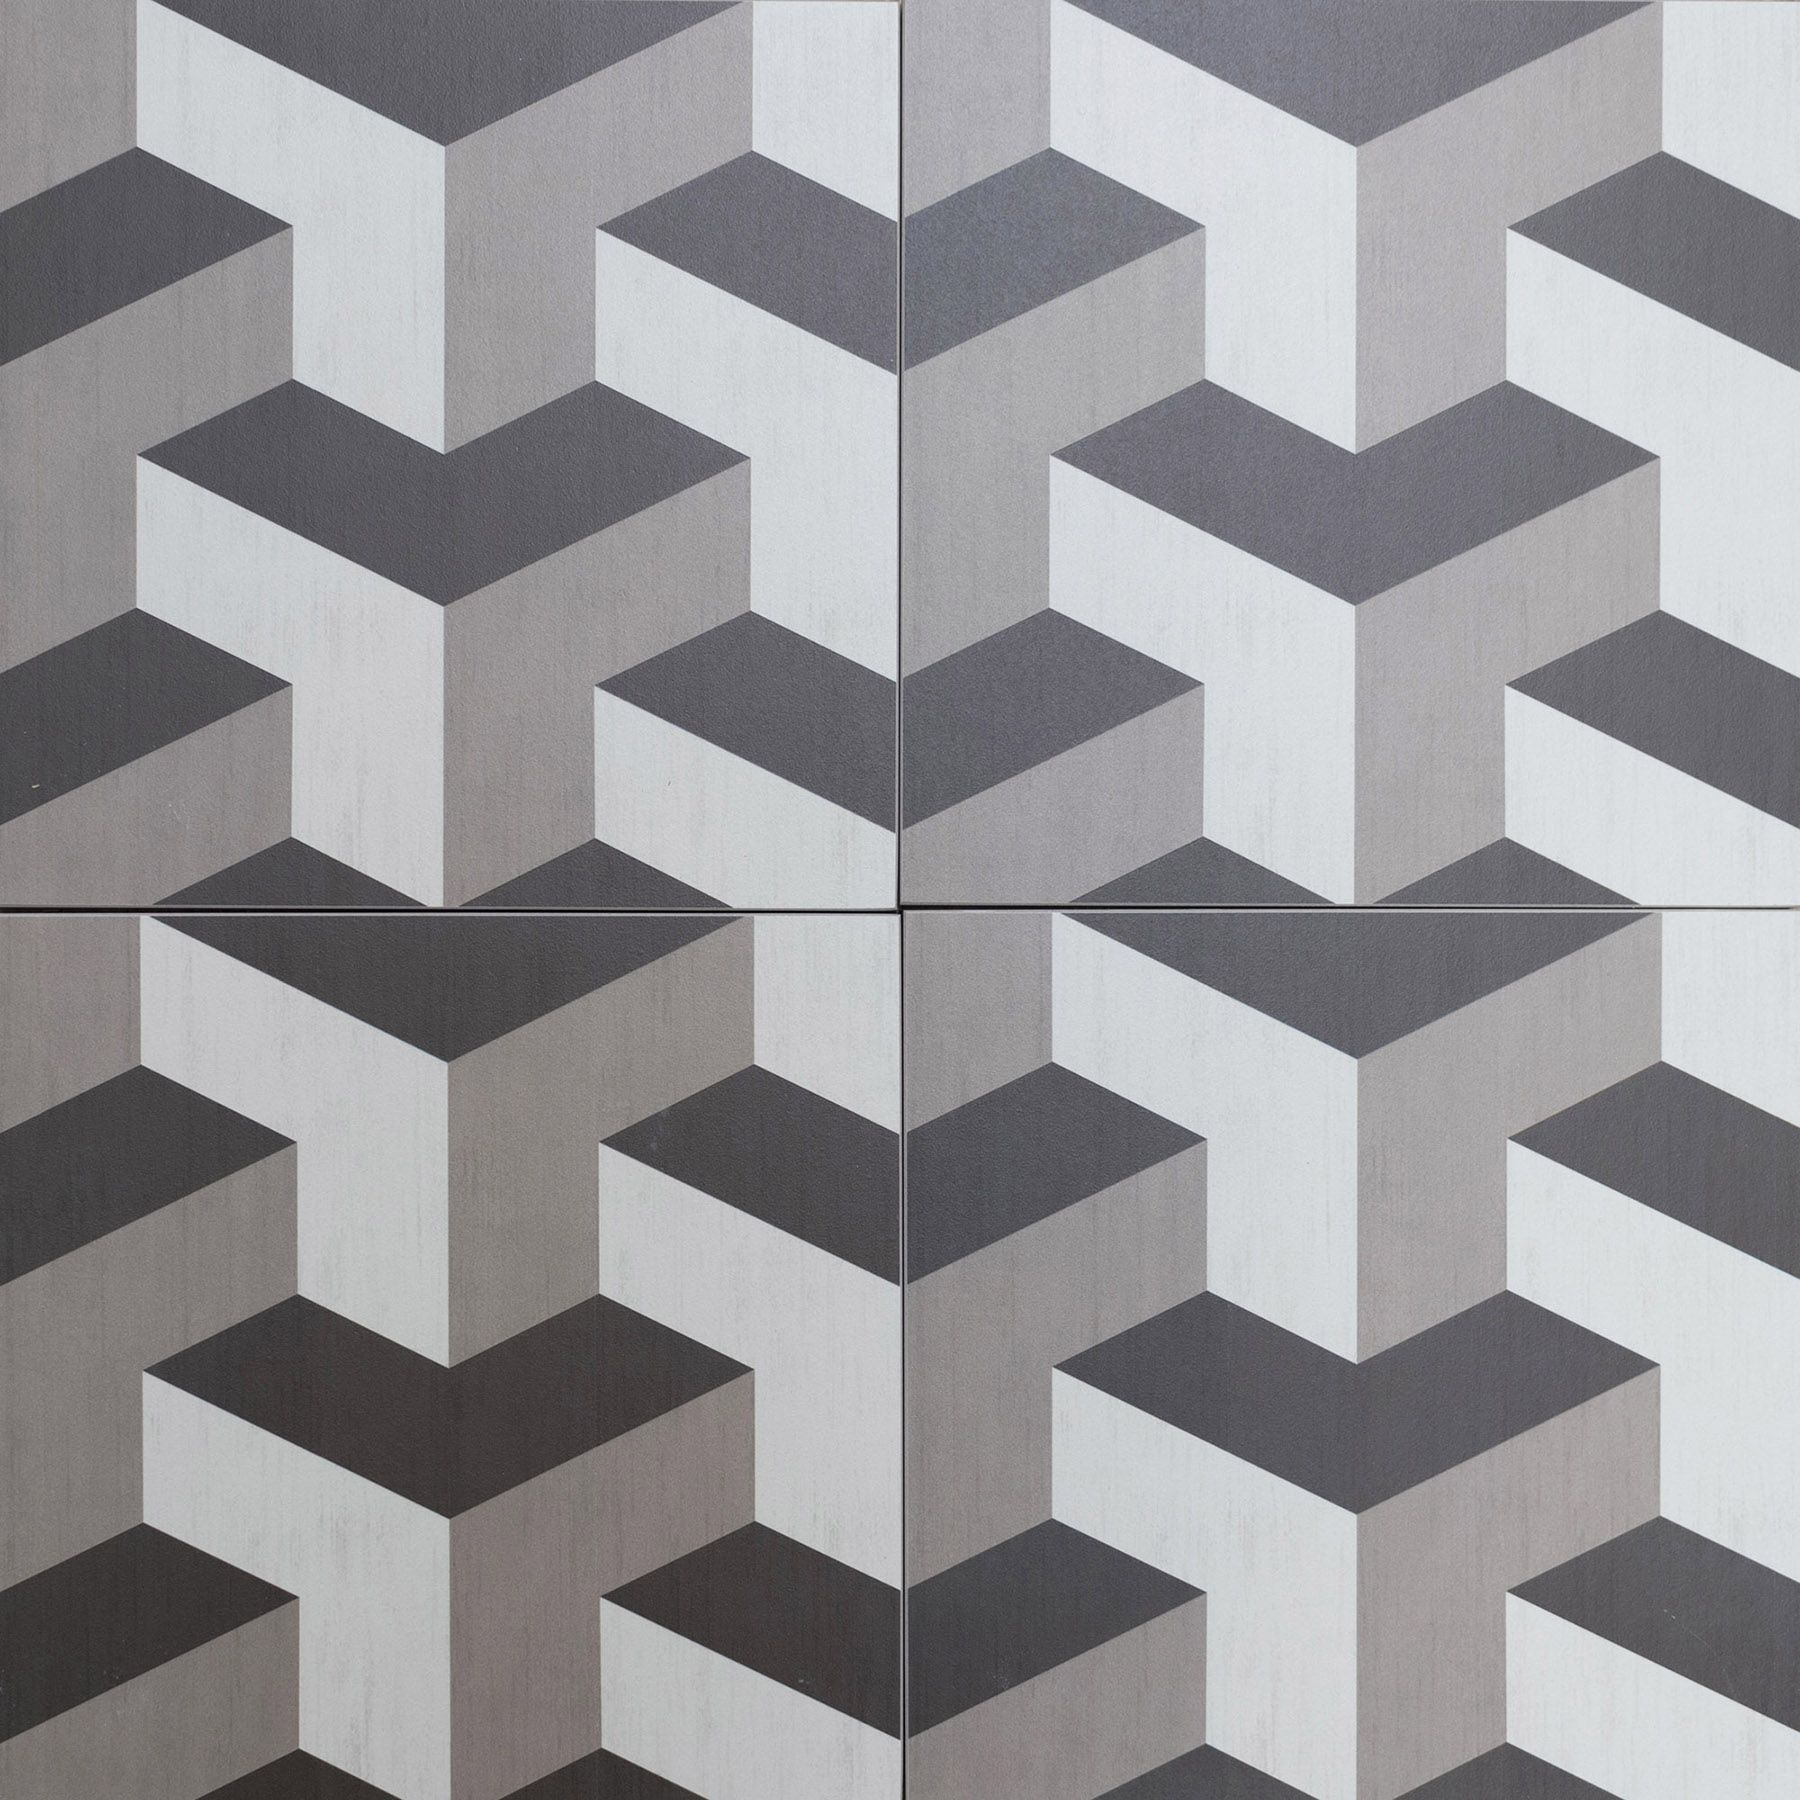 Cubic, geometric, style floor tiles encaustic look porcelain tiles. Grey  shades with funky, retro pattern.